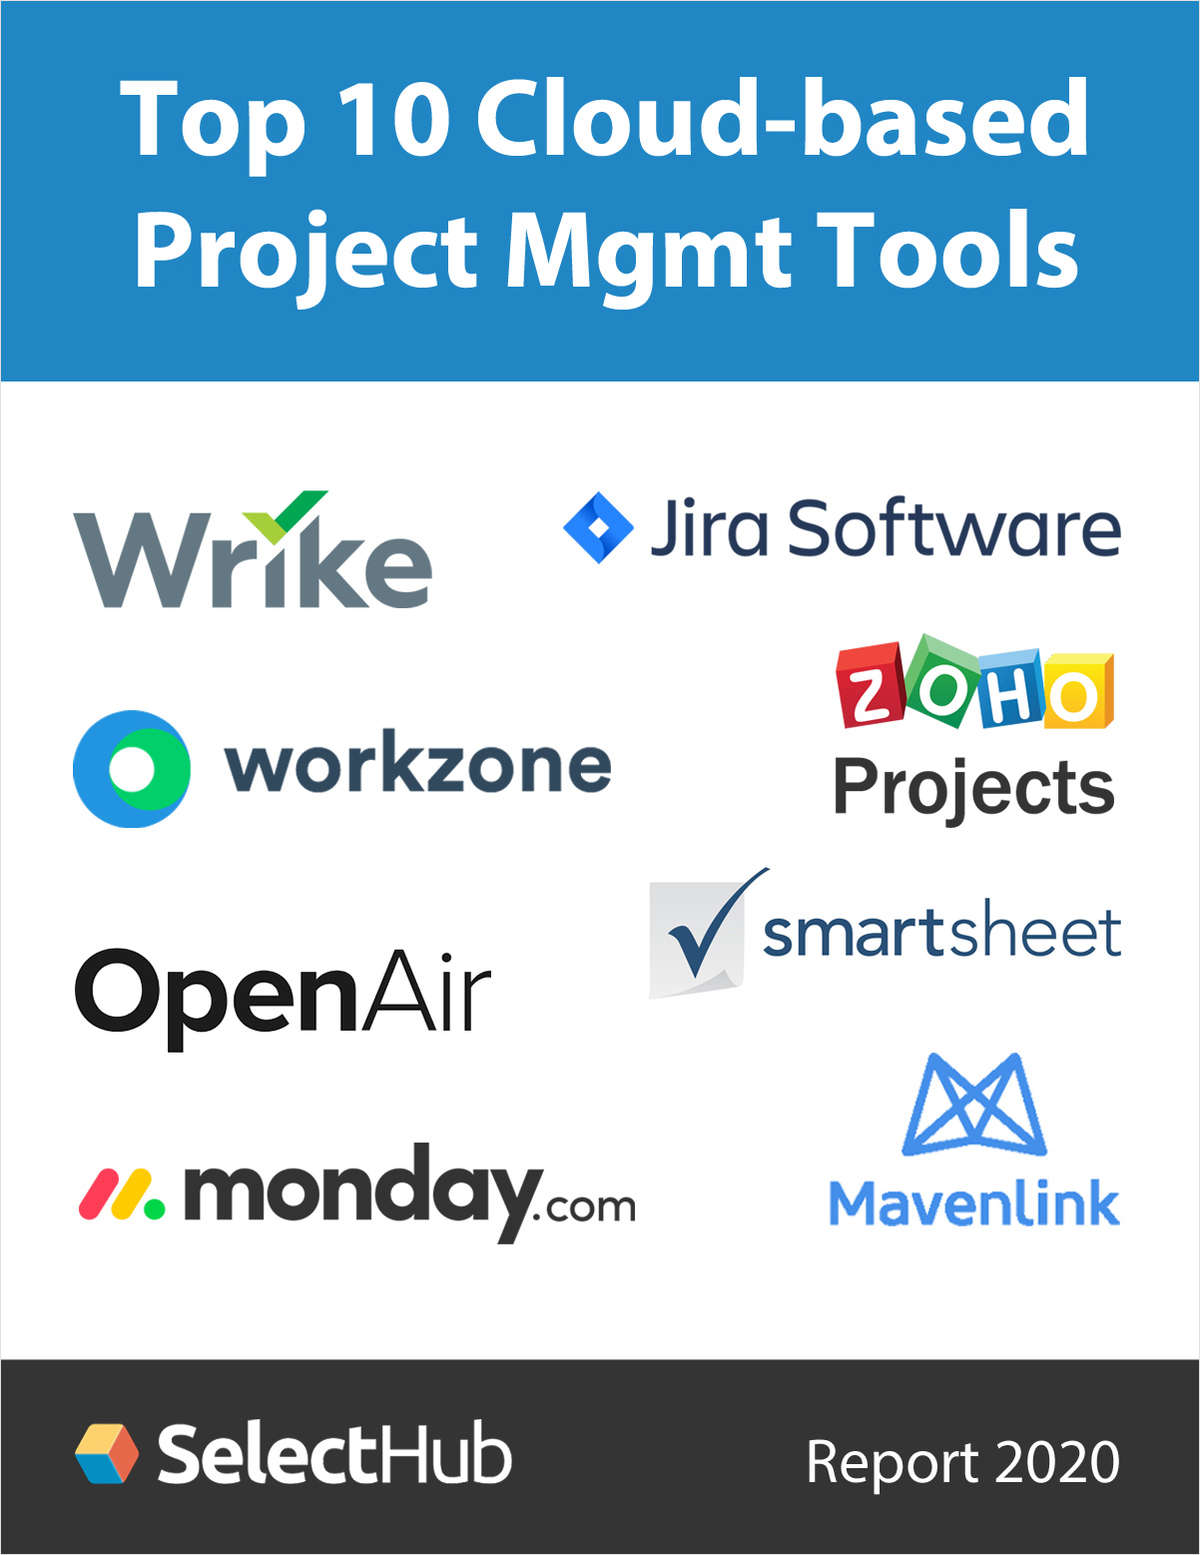 Top 10 Cloud-based Project Management Tools for 2020--Free Analyst Report